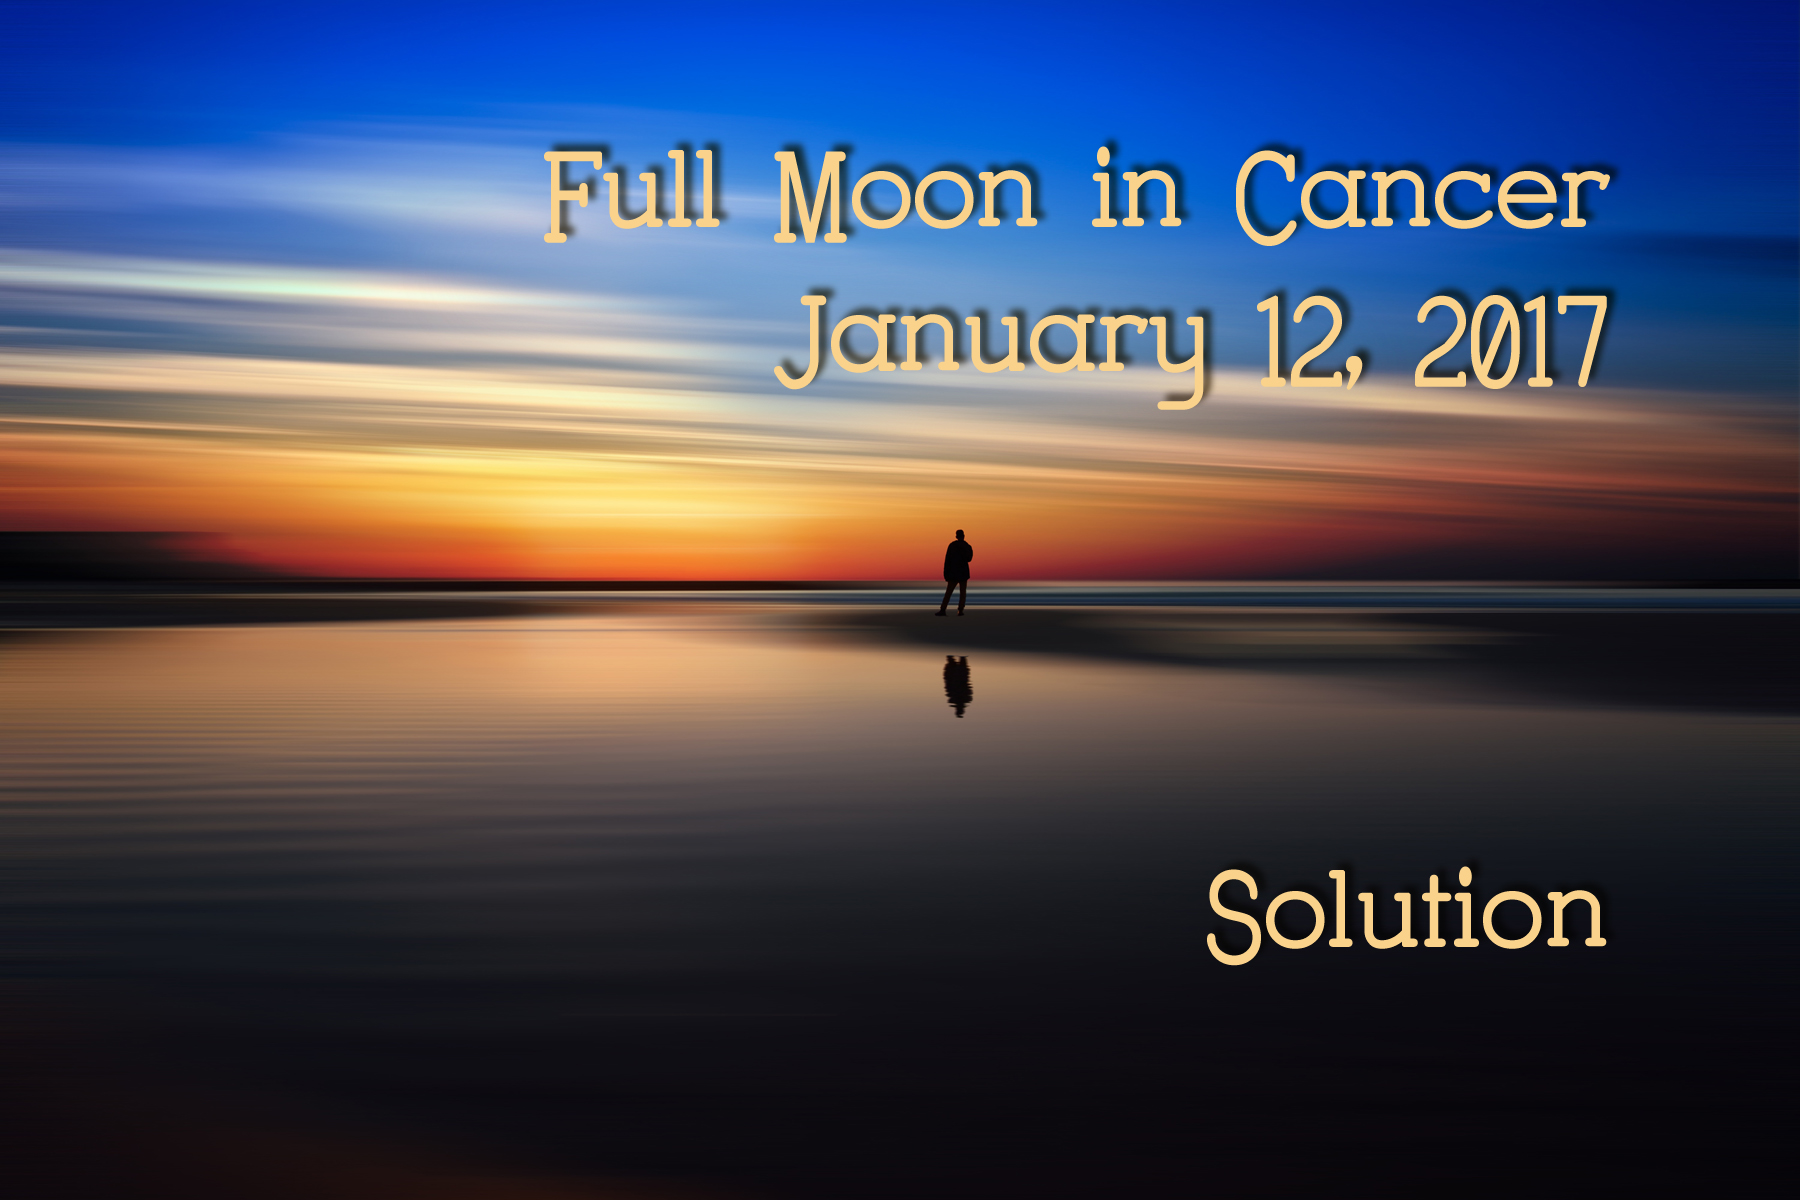 Full Moon in Cancer: Solution